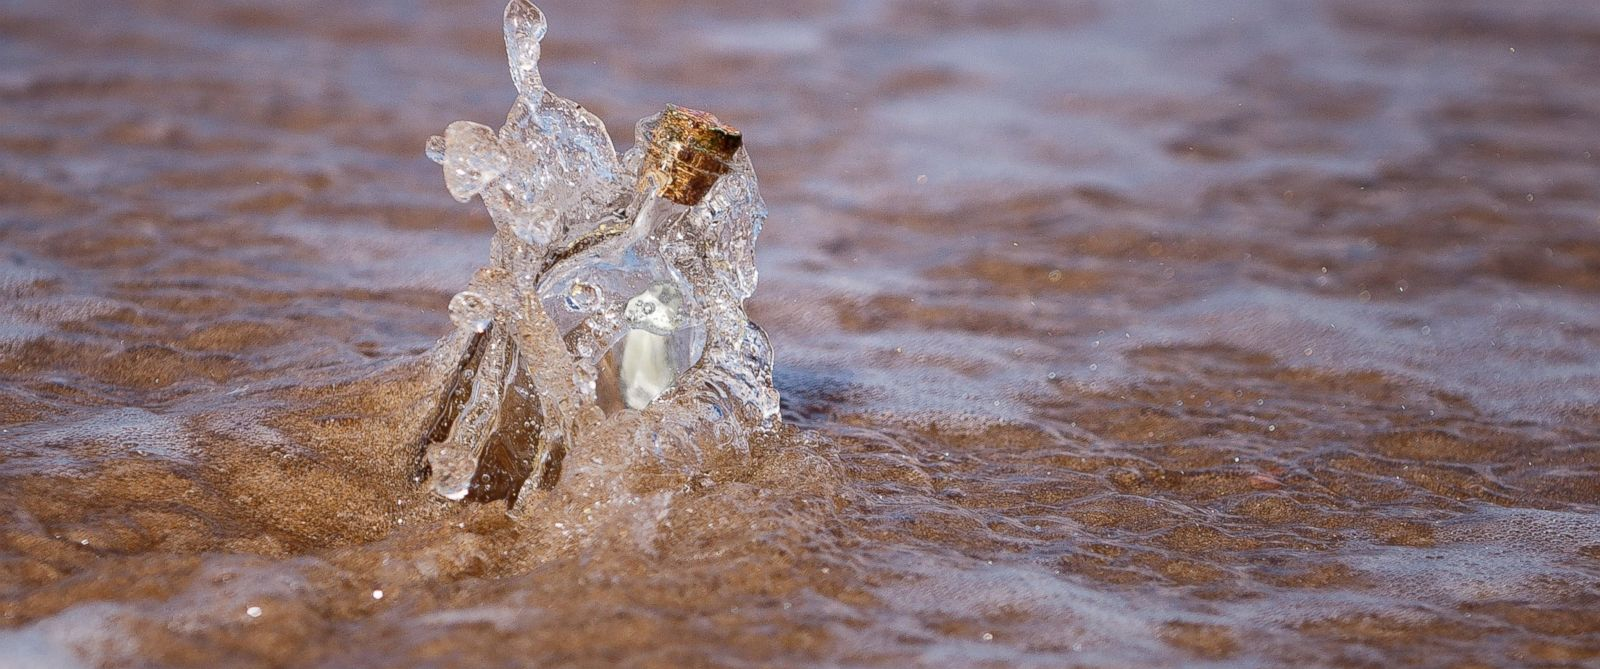 PHOTO: A message in a bottle is visible on a beach in this stock image.